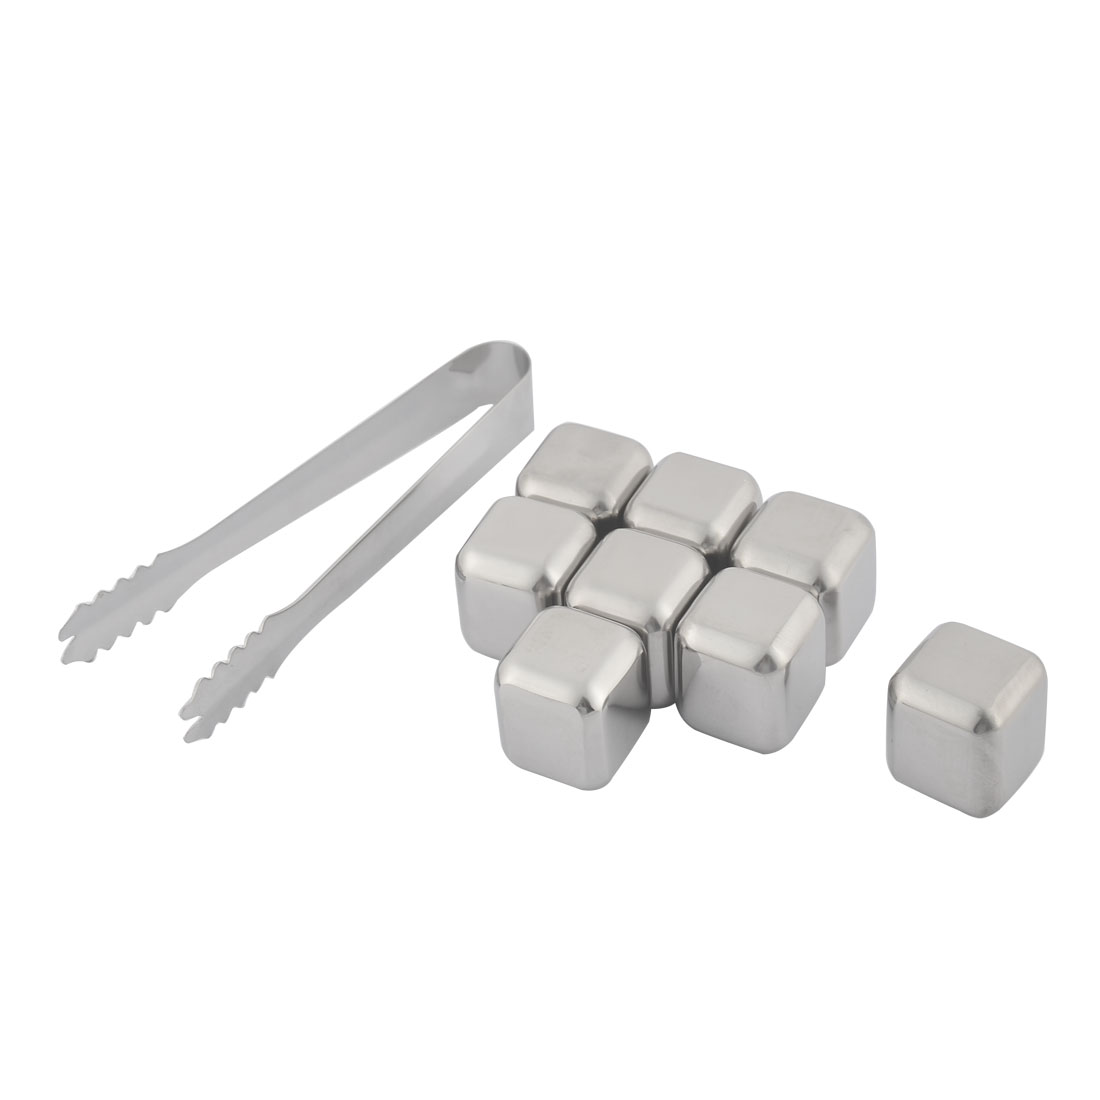 Home Stainless Steel Cubic Shaped Soda Juice Ice Cube Silver Tone 9 in 1